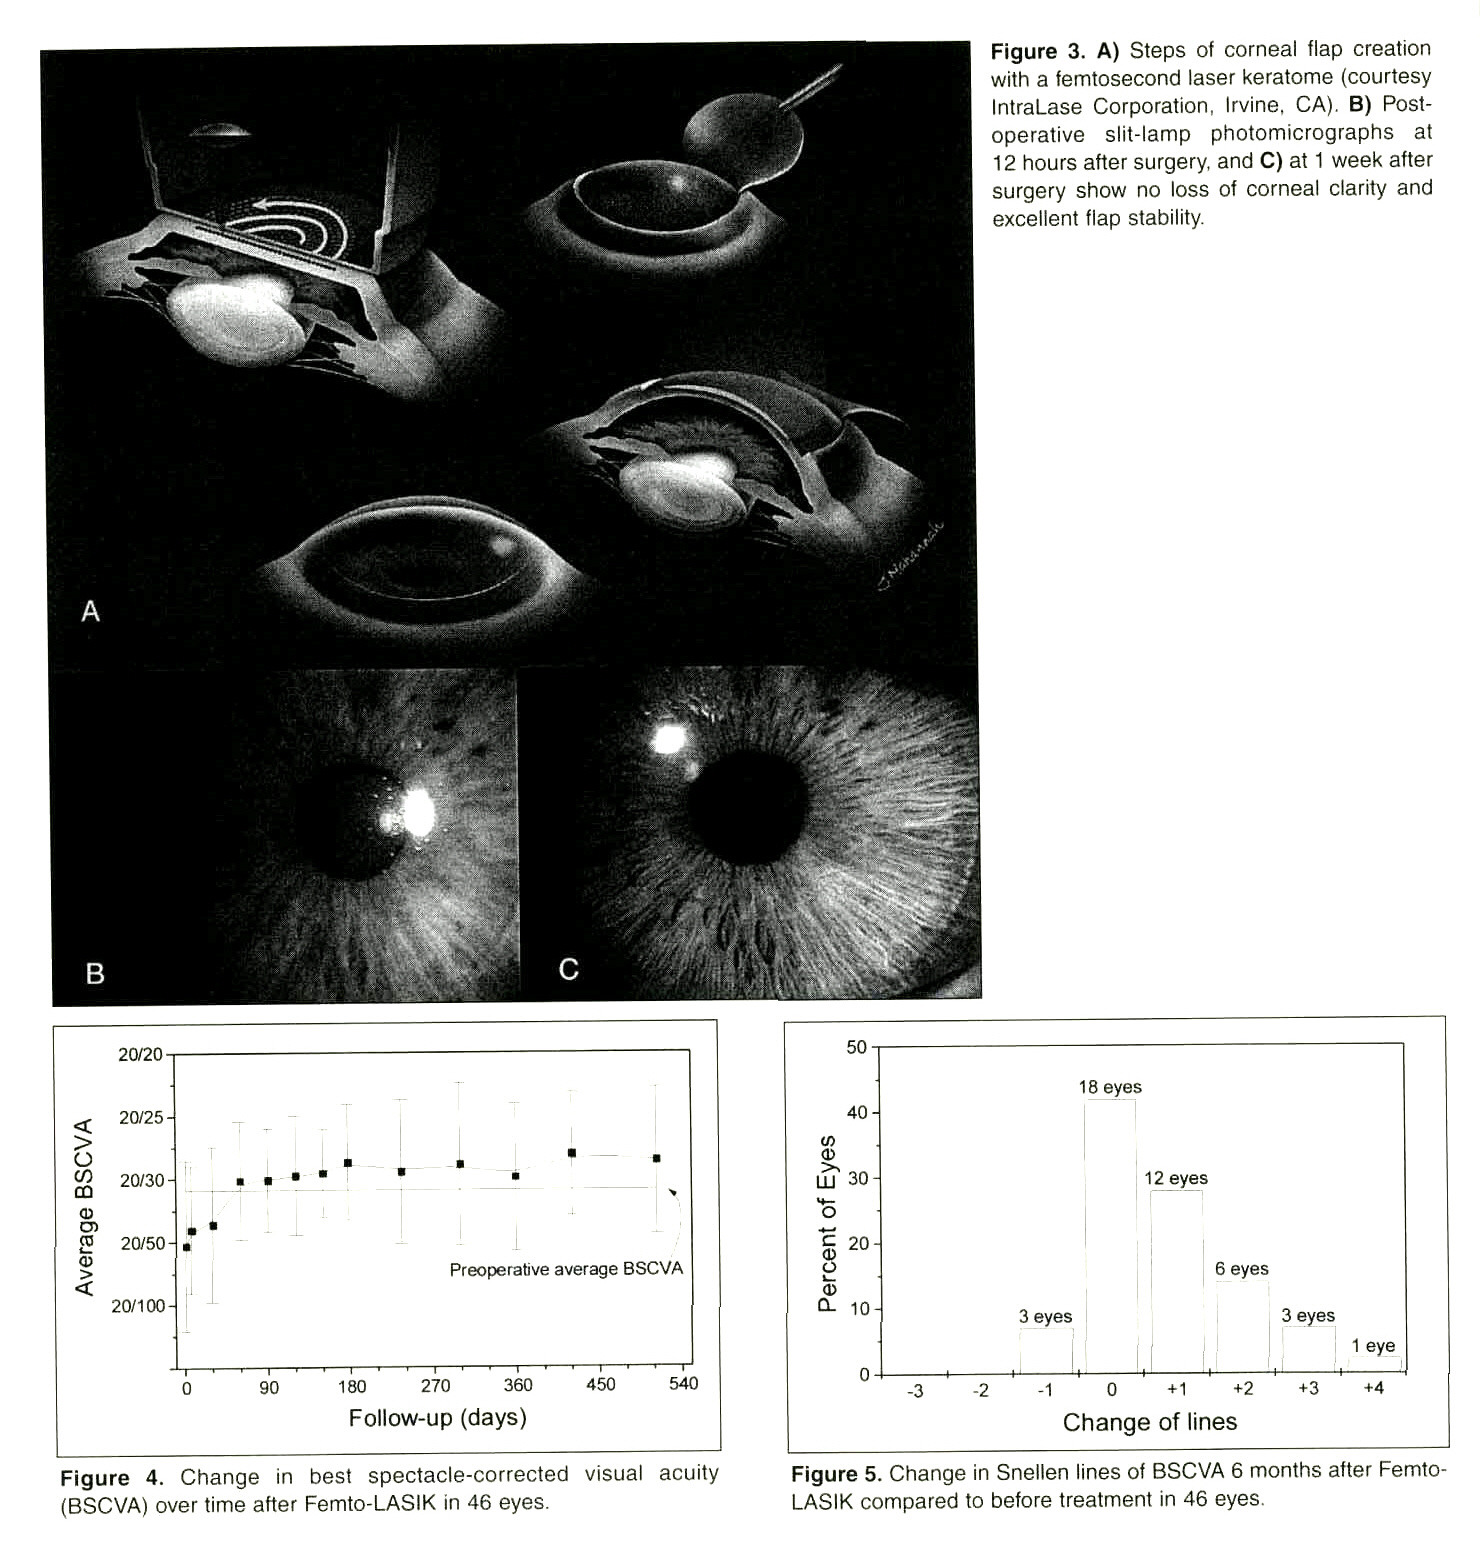 Figure 3. A) Steps of corneal flap creation with a femtosecond laser keratome (courtesy IntraLase Corporation, Irvine, CA). B) Postoperative slit-lamp photomicrographs at 12 hours after surgery, and C) at 1 week after surgery show no loss of corneal clarity and excellent flap stability.Figure 4. Change in best spectacle-corrected visual acuity (BSCVA) over time after Femto-LASIK in 46 eyes.Figure 5. Change in Snellen lines of BSCVA 6 months after FemtoLASIK compared to before treatment in 46 eyes.